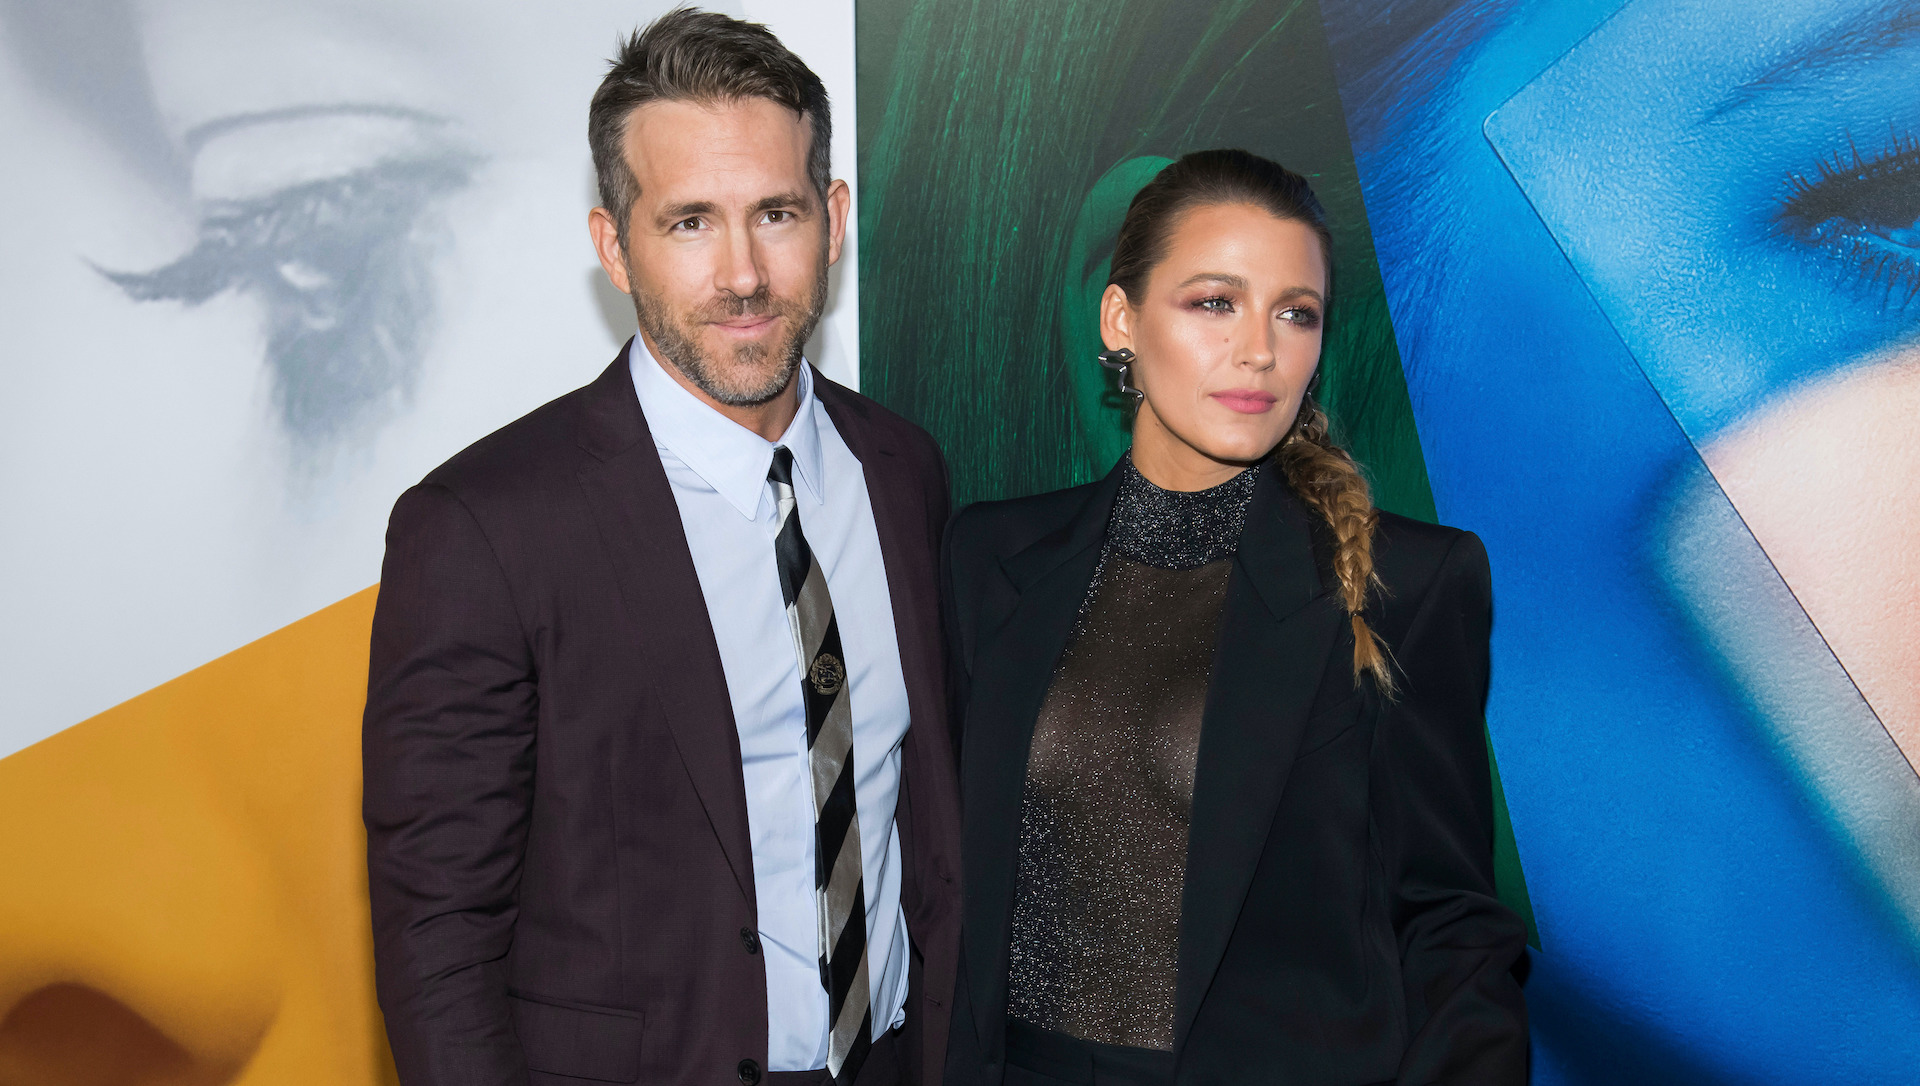 Blake Lively & Ryan Reynolds Are 'Ashamed' of Their Past Racism & Are Teaching Their Kids to Do Better